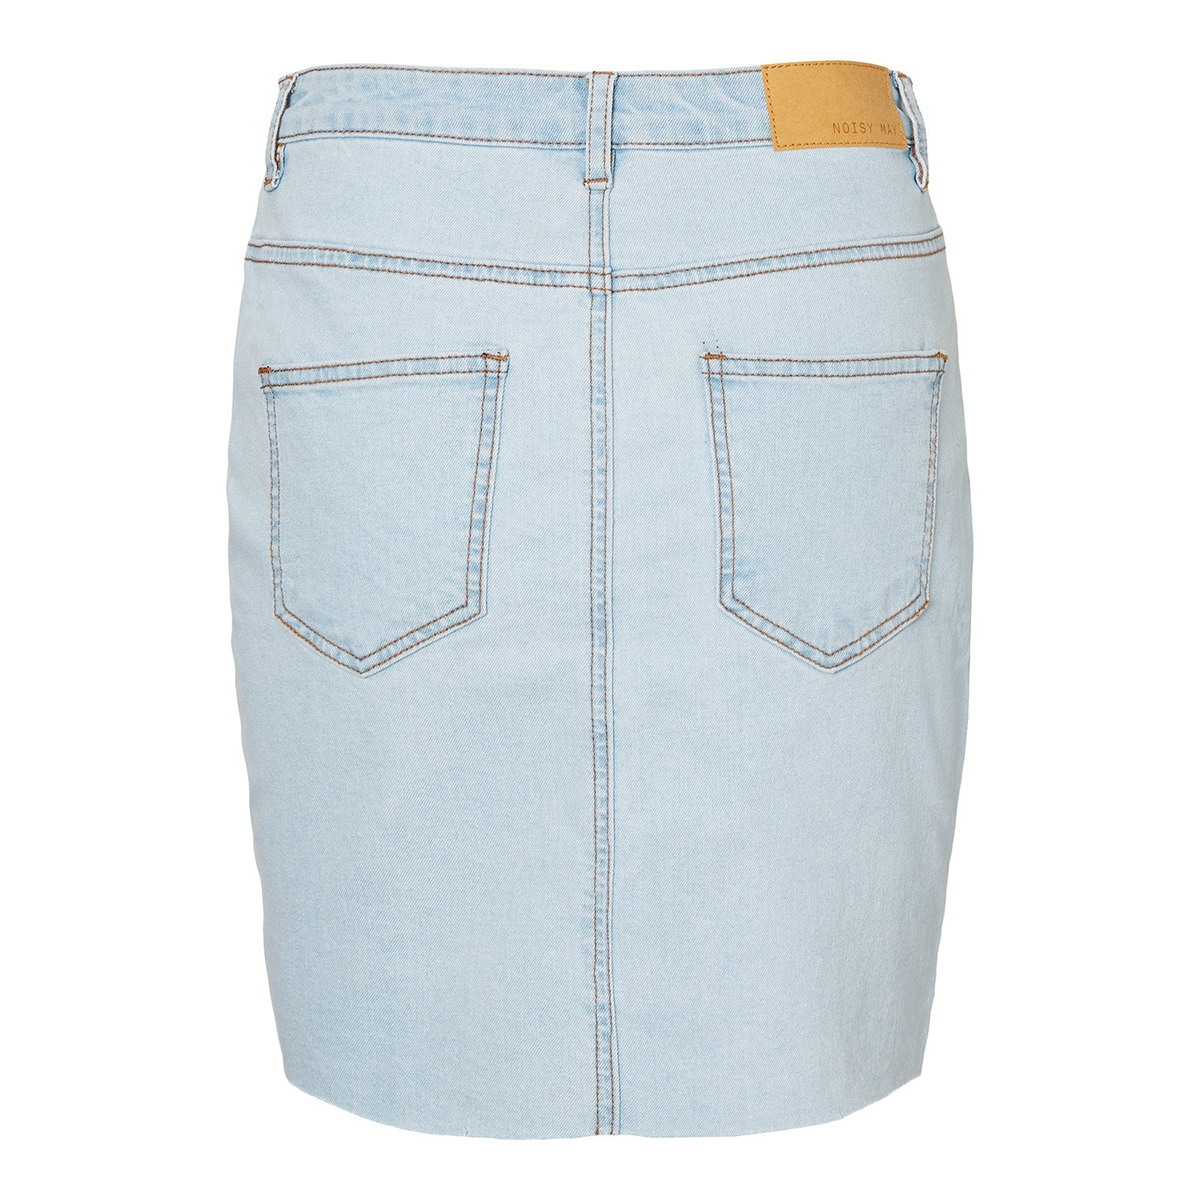 nmbe callie hw short skirt jt088lb 27010908 noisy may rok light blue denim